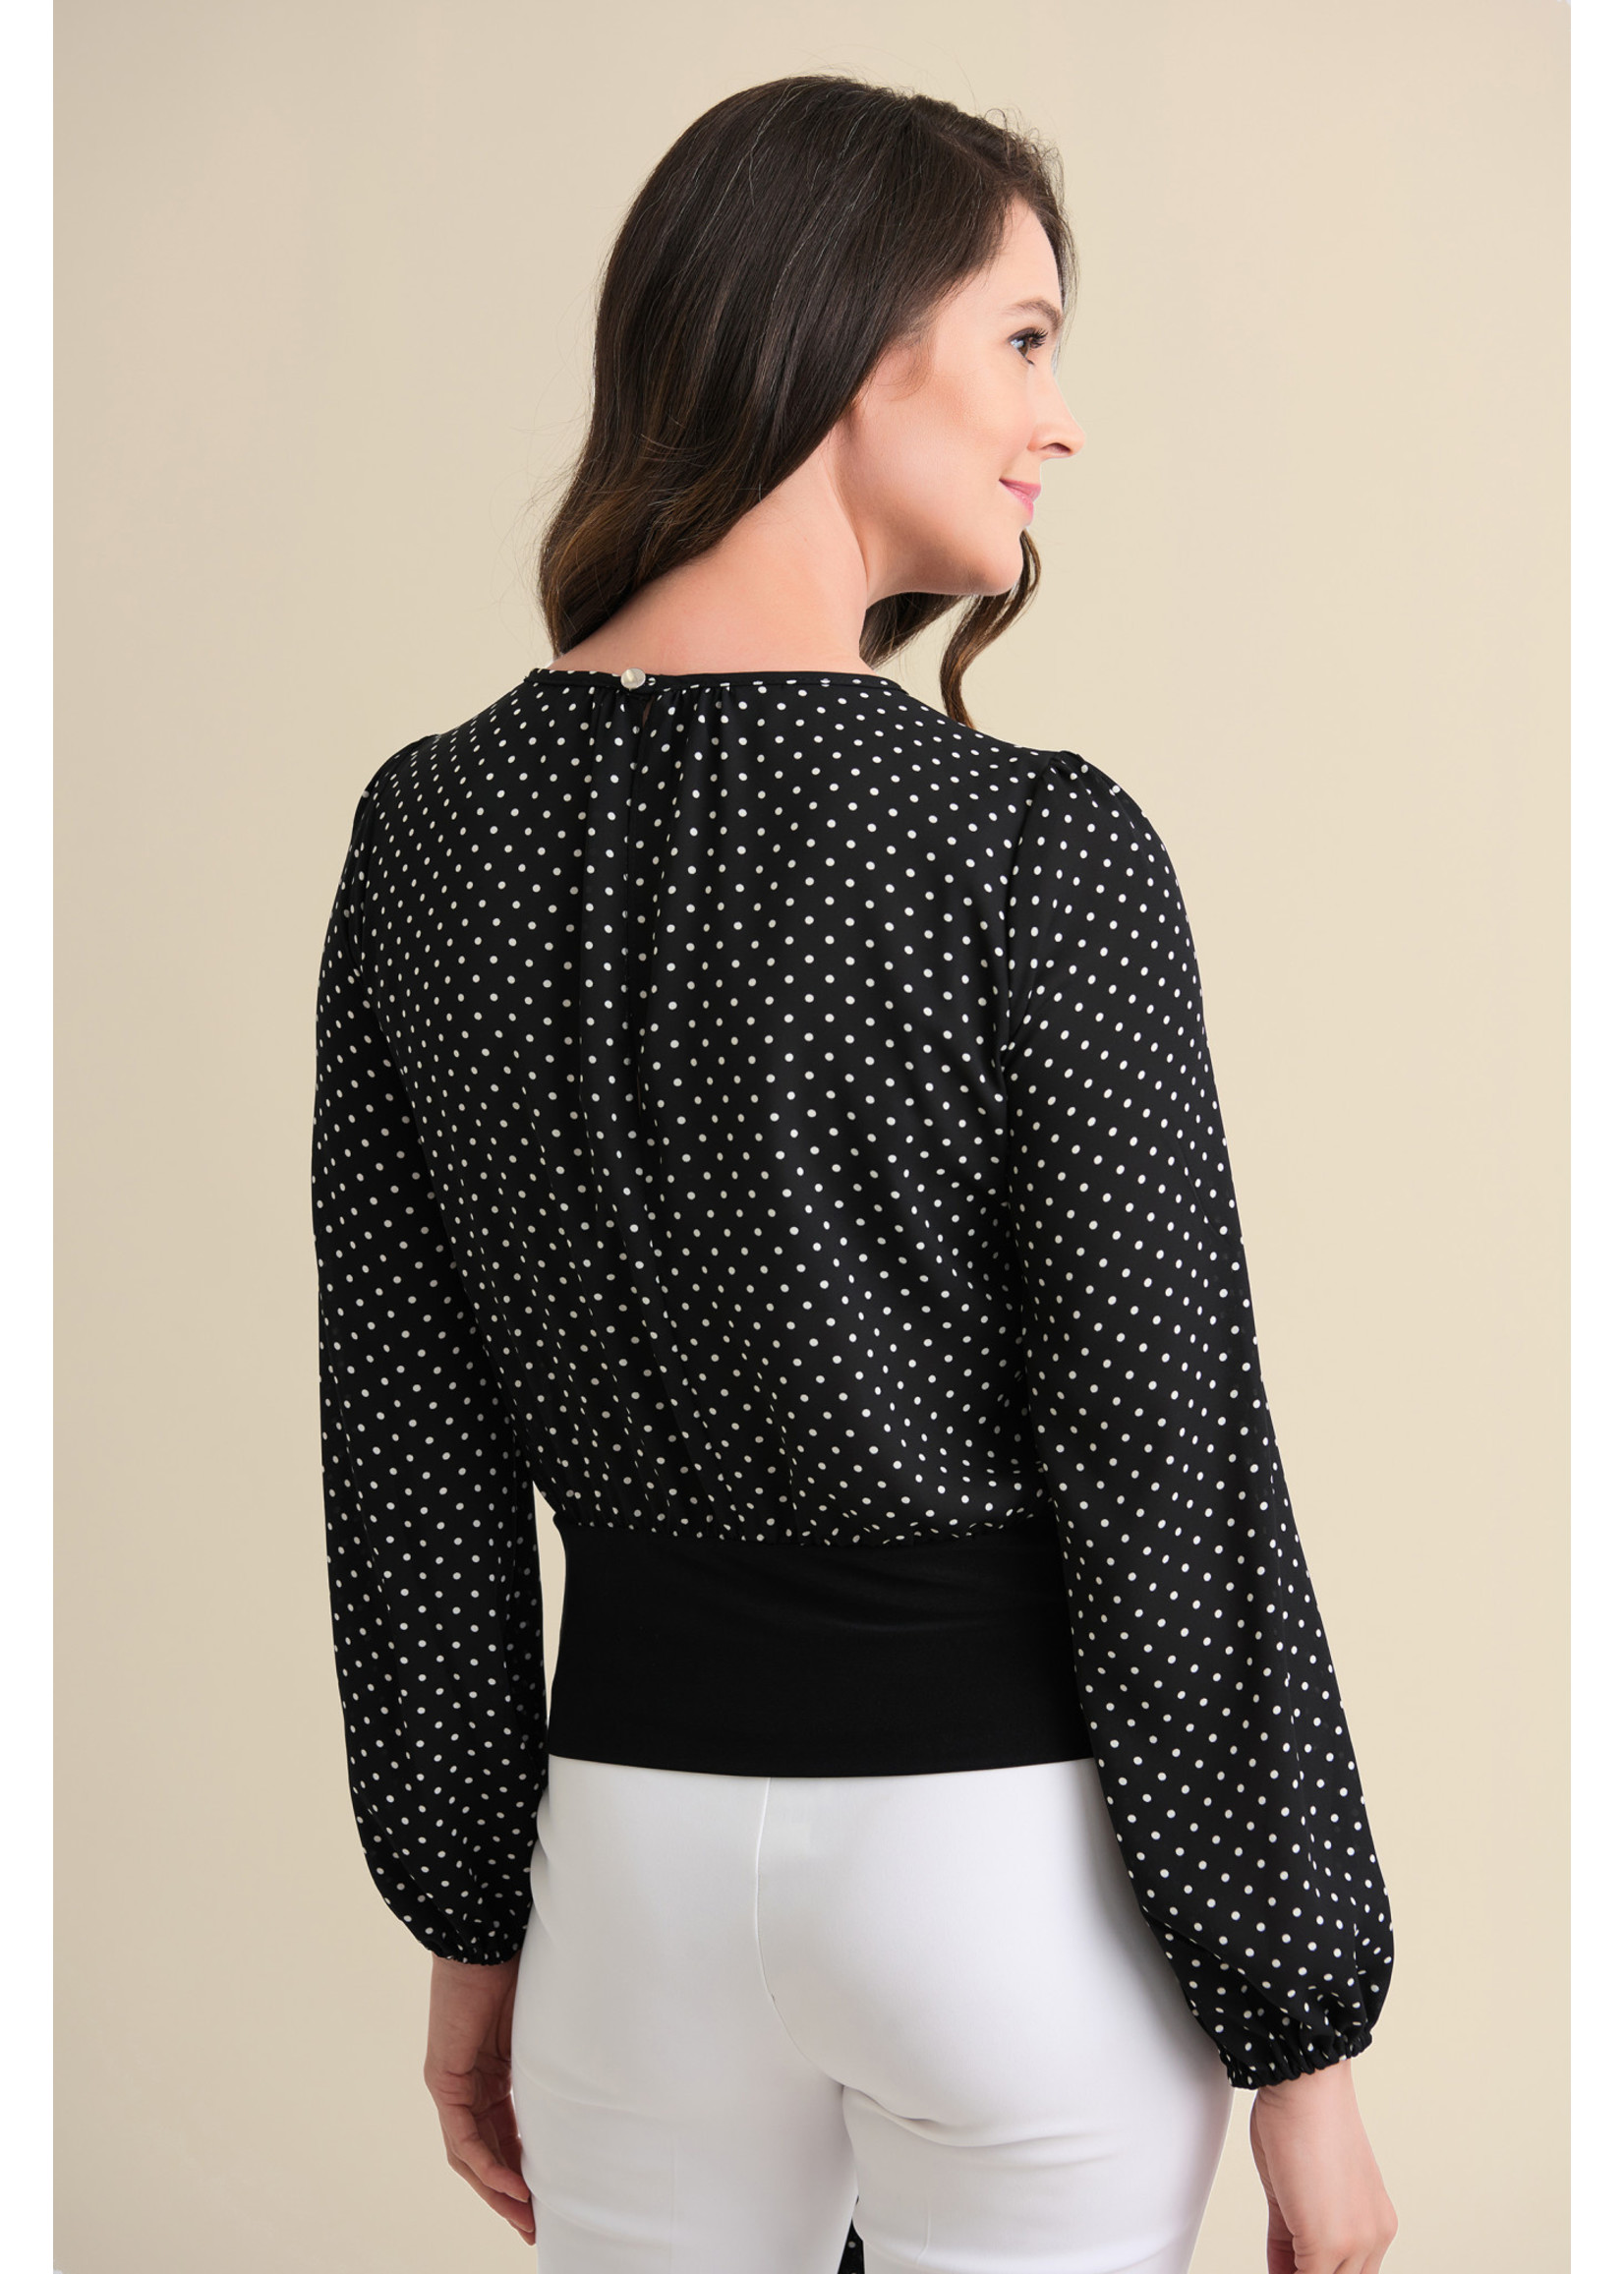 Joseph Ribkoff Polka Dot Belted Top